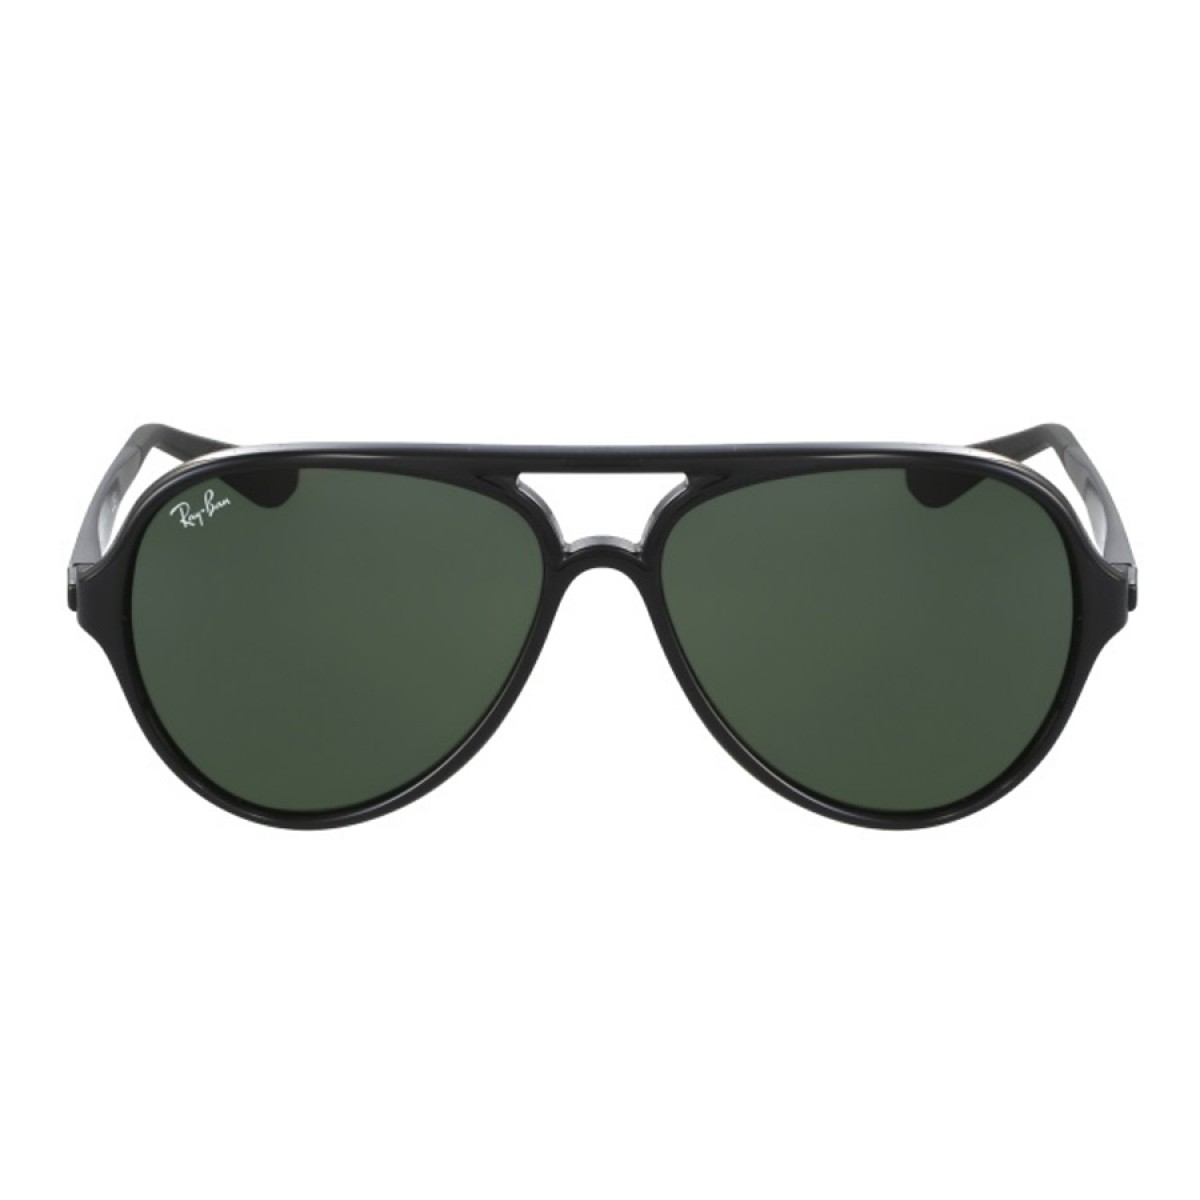 4c661ebe75 ... sale ray ban active lifestyle unisex sunglasses rb4235 601 f5cf6 bd2f6